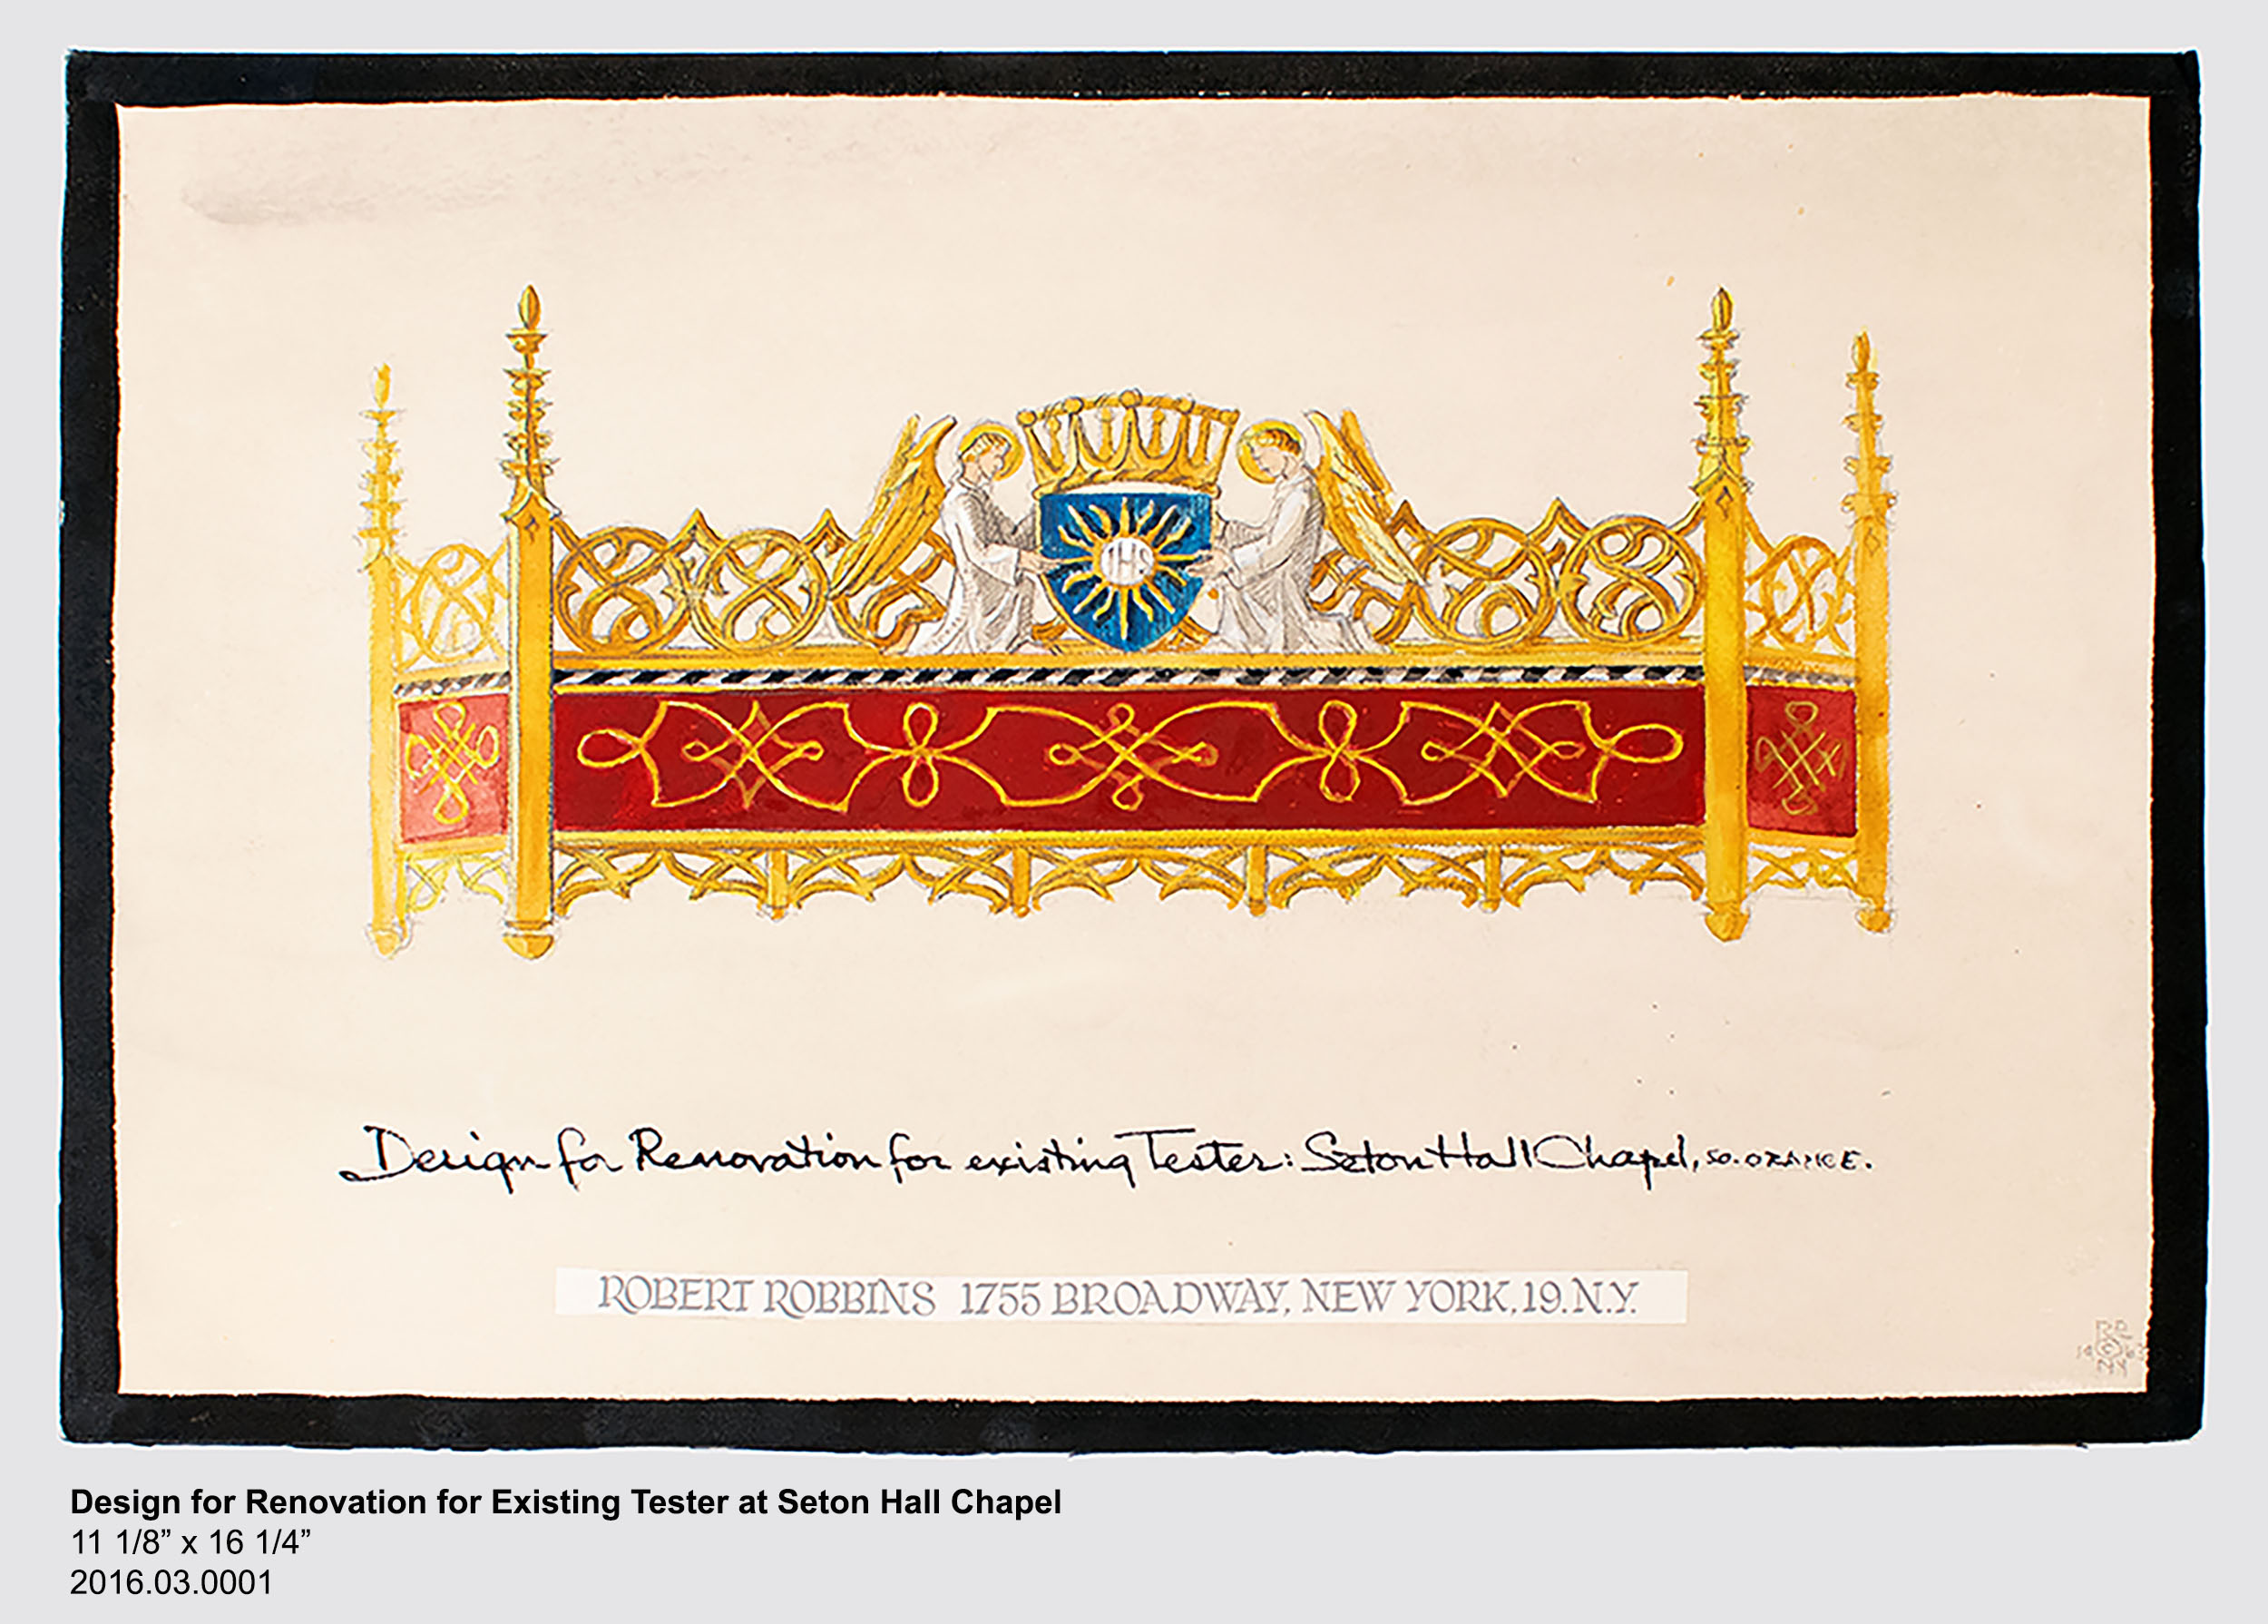 Design for Renovation for Existing Tester at Seton Hall Chapel, 11 1/8 inches tall by 16 1/4 inches wide, 2016.03.0001